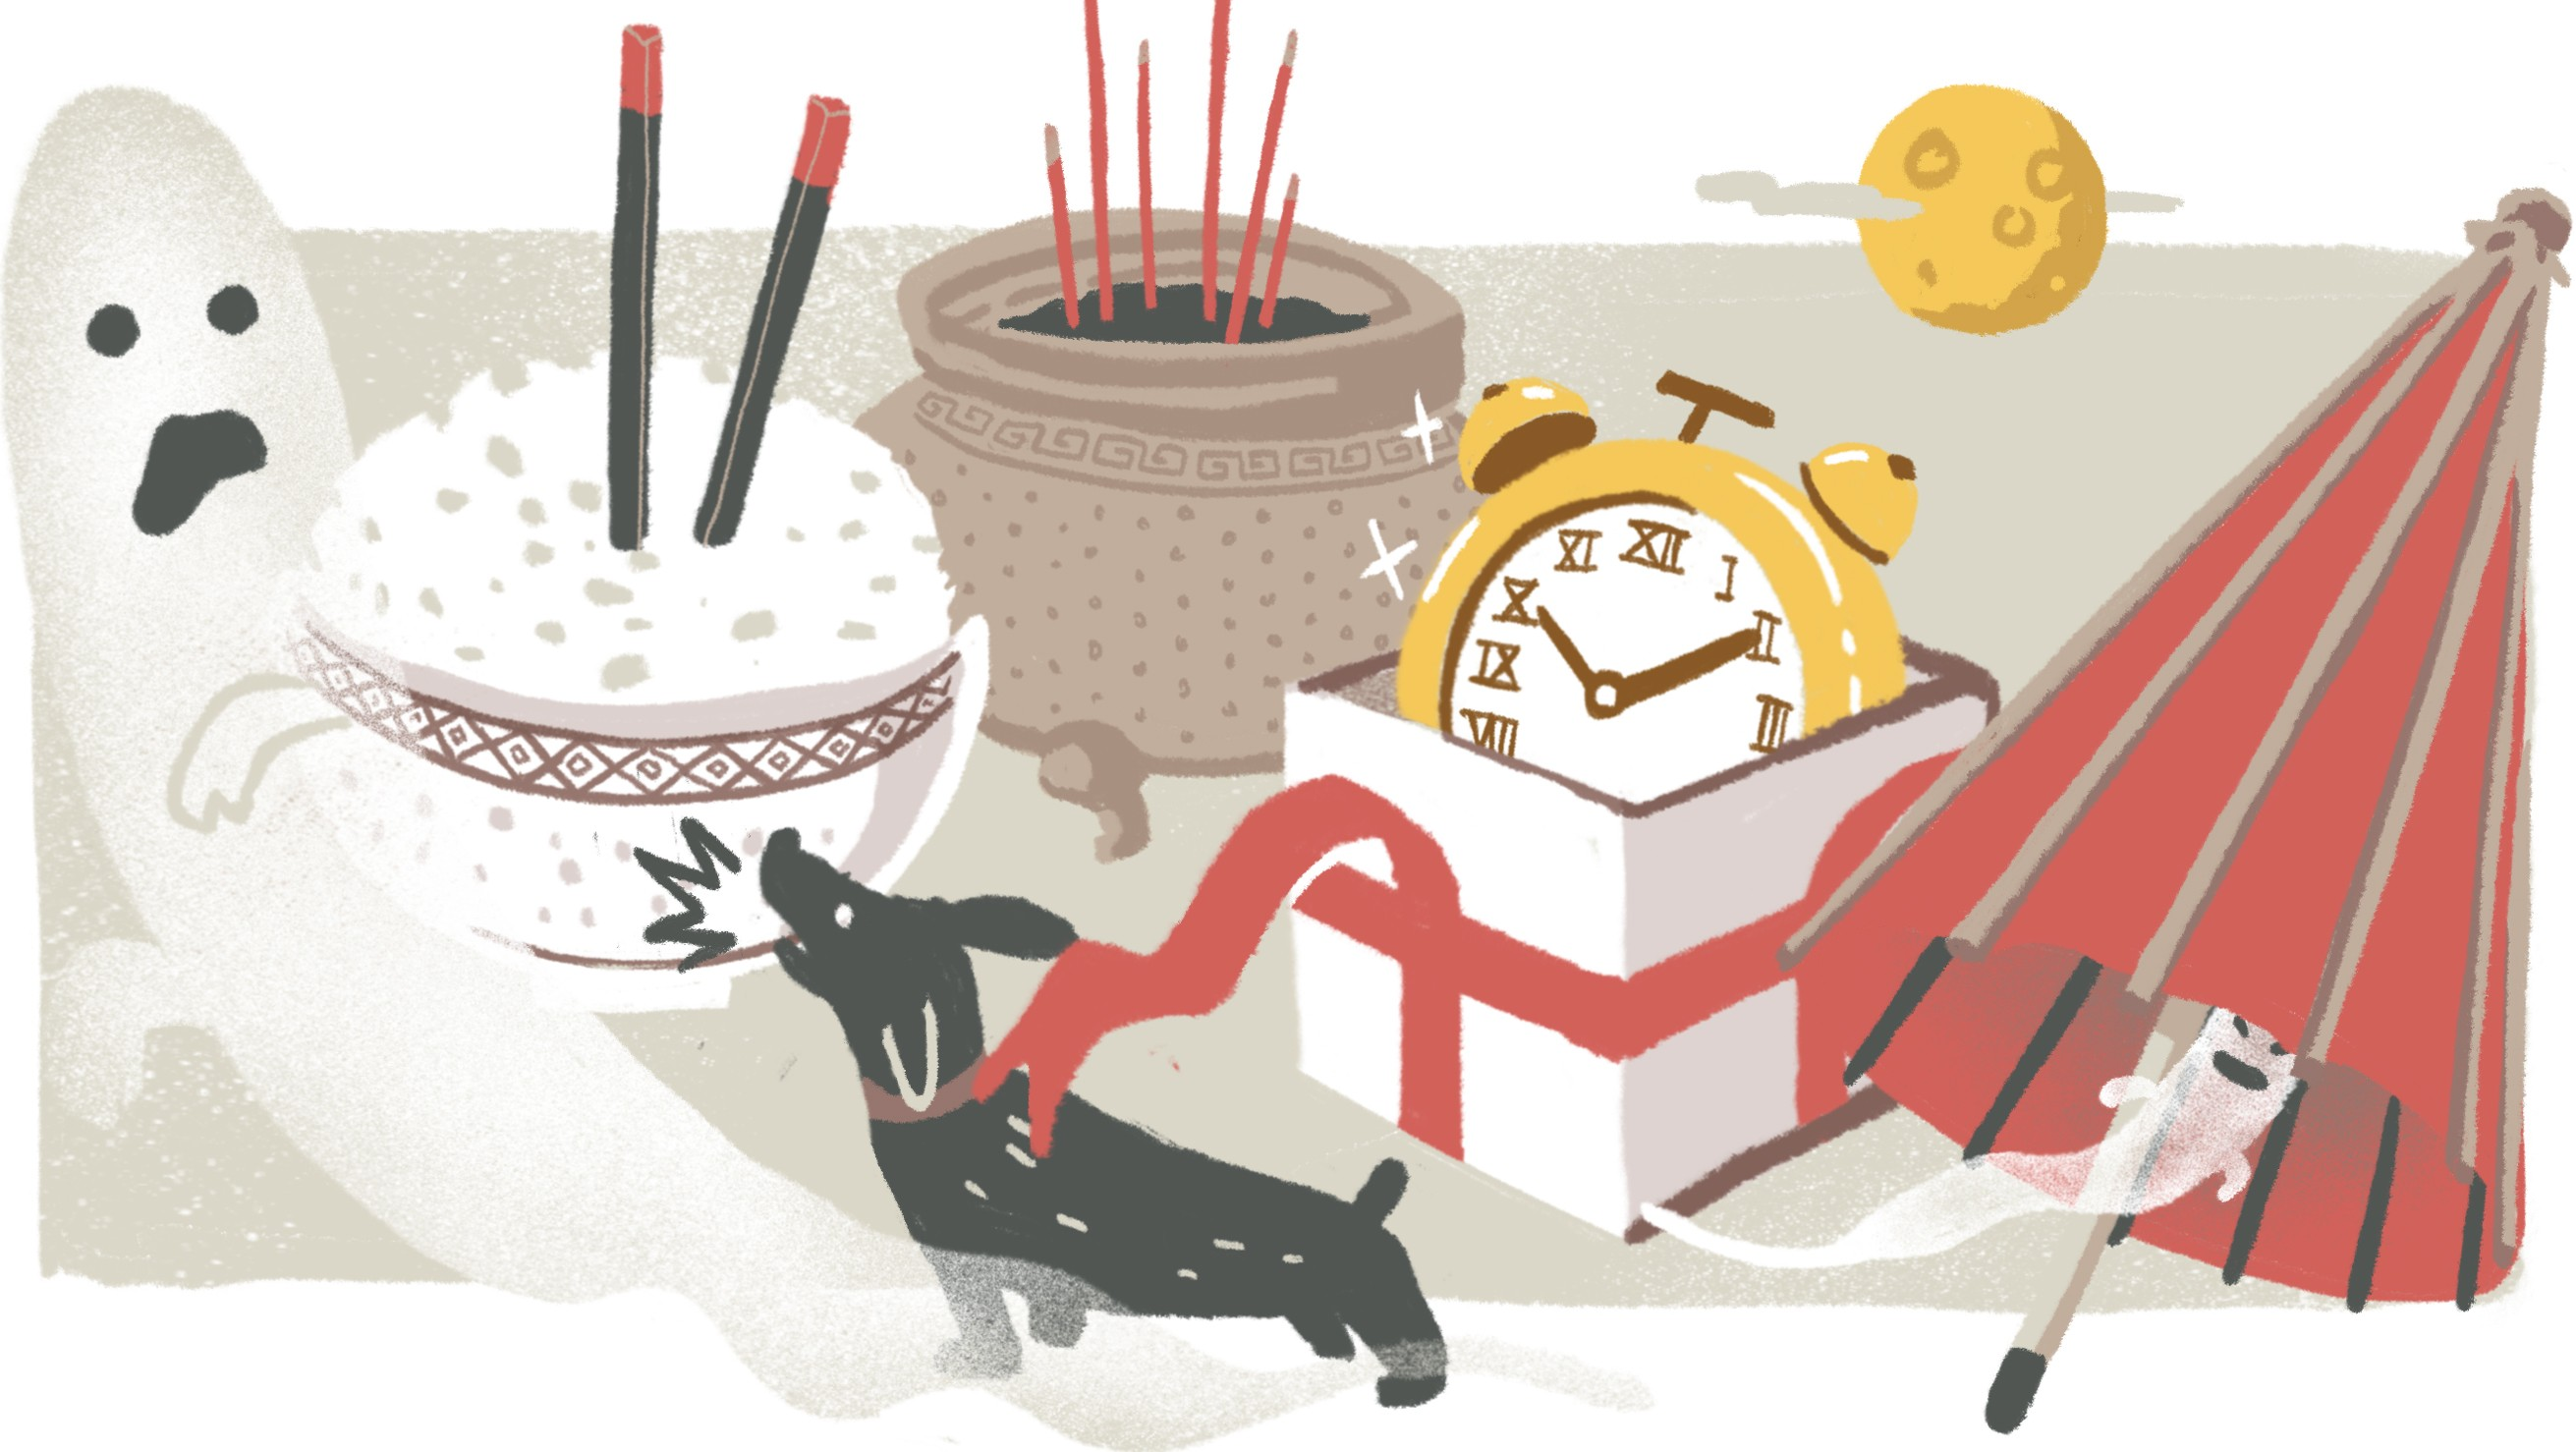 Auspicious numbers, no-go presents and self-grooming quirks